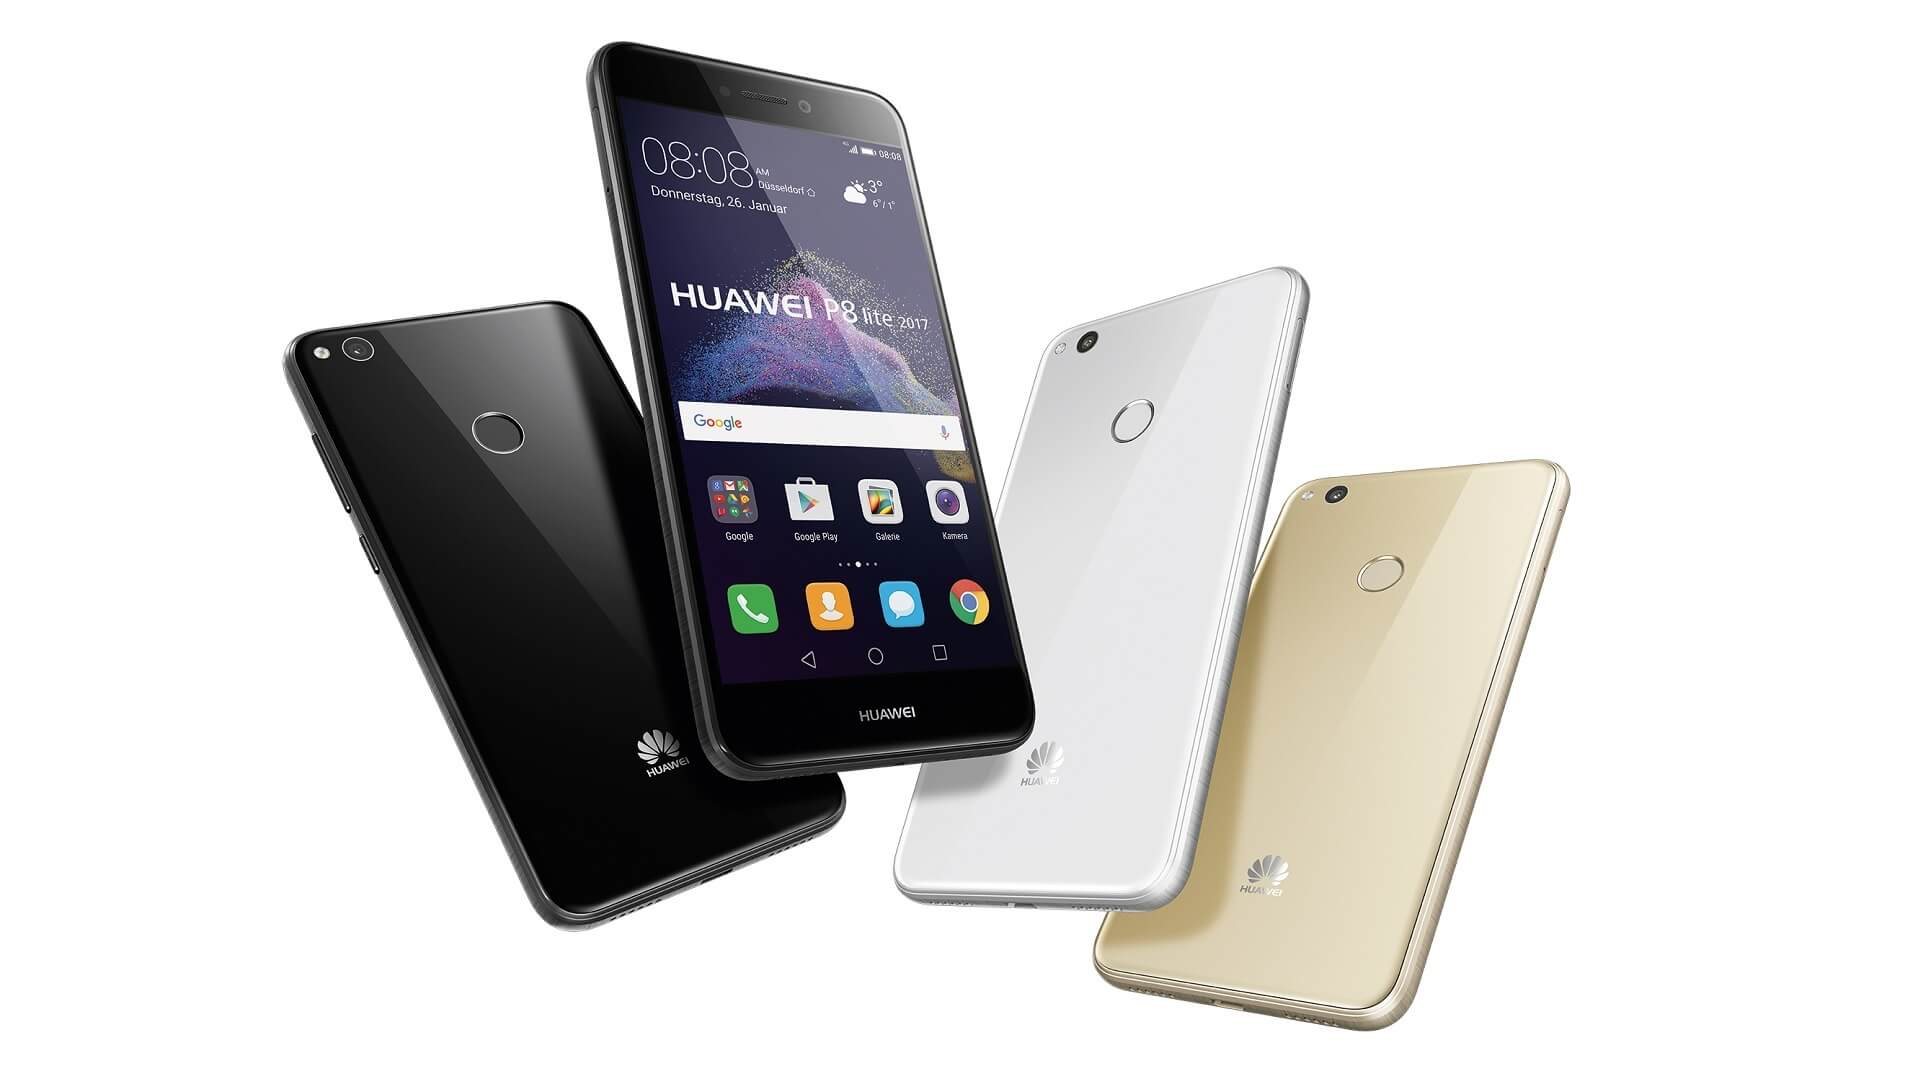 Huawei P8 Lite 2017 Android Smartphone